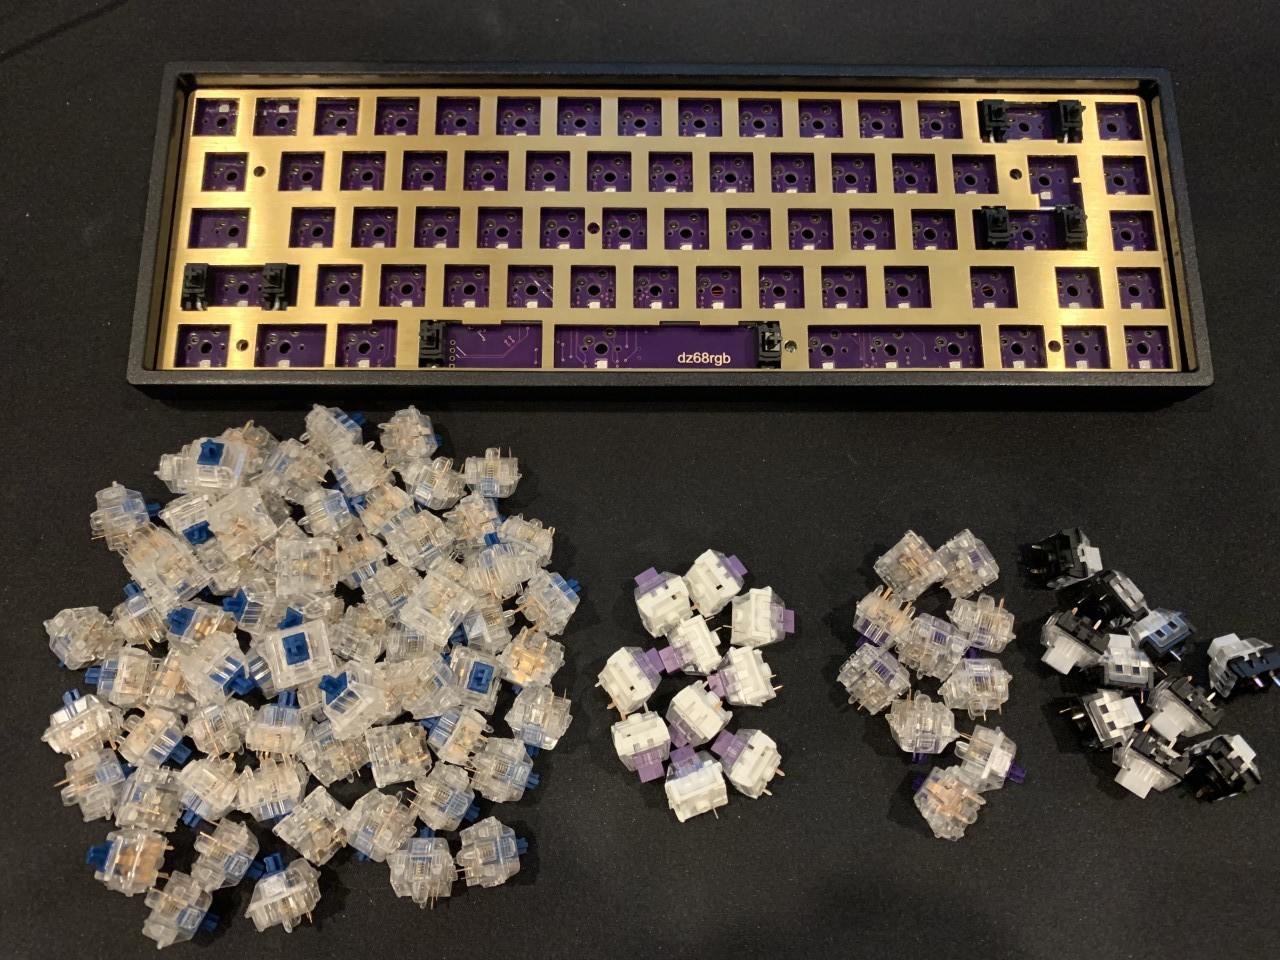 A pile of switches